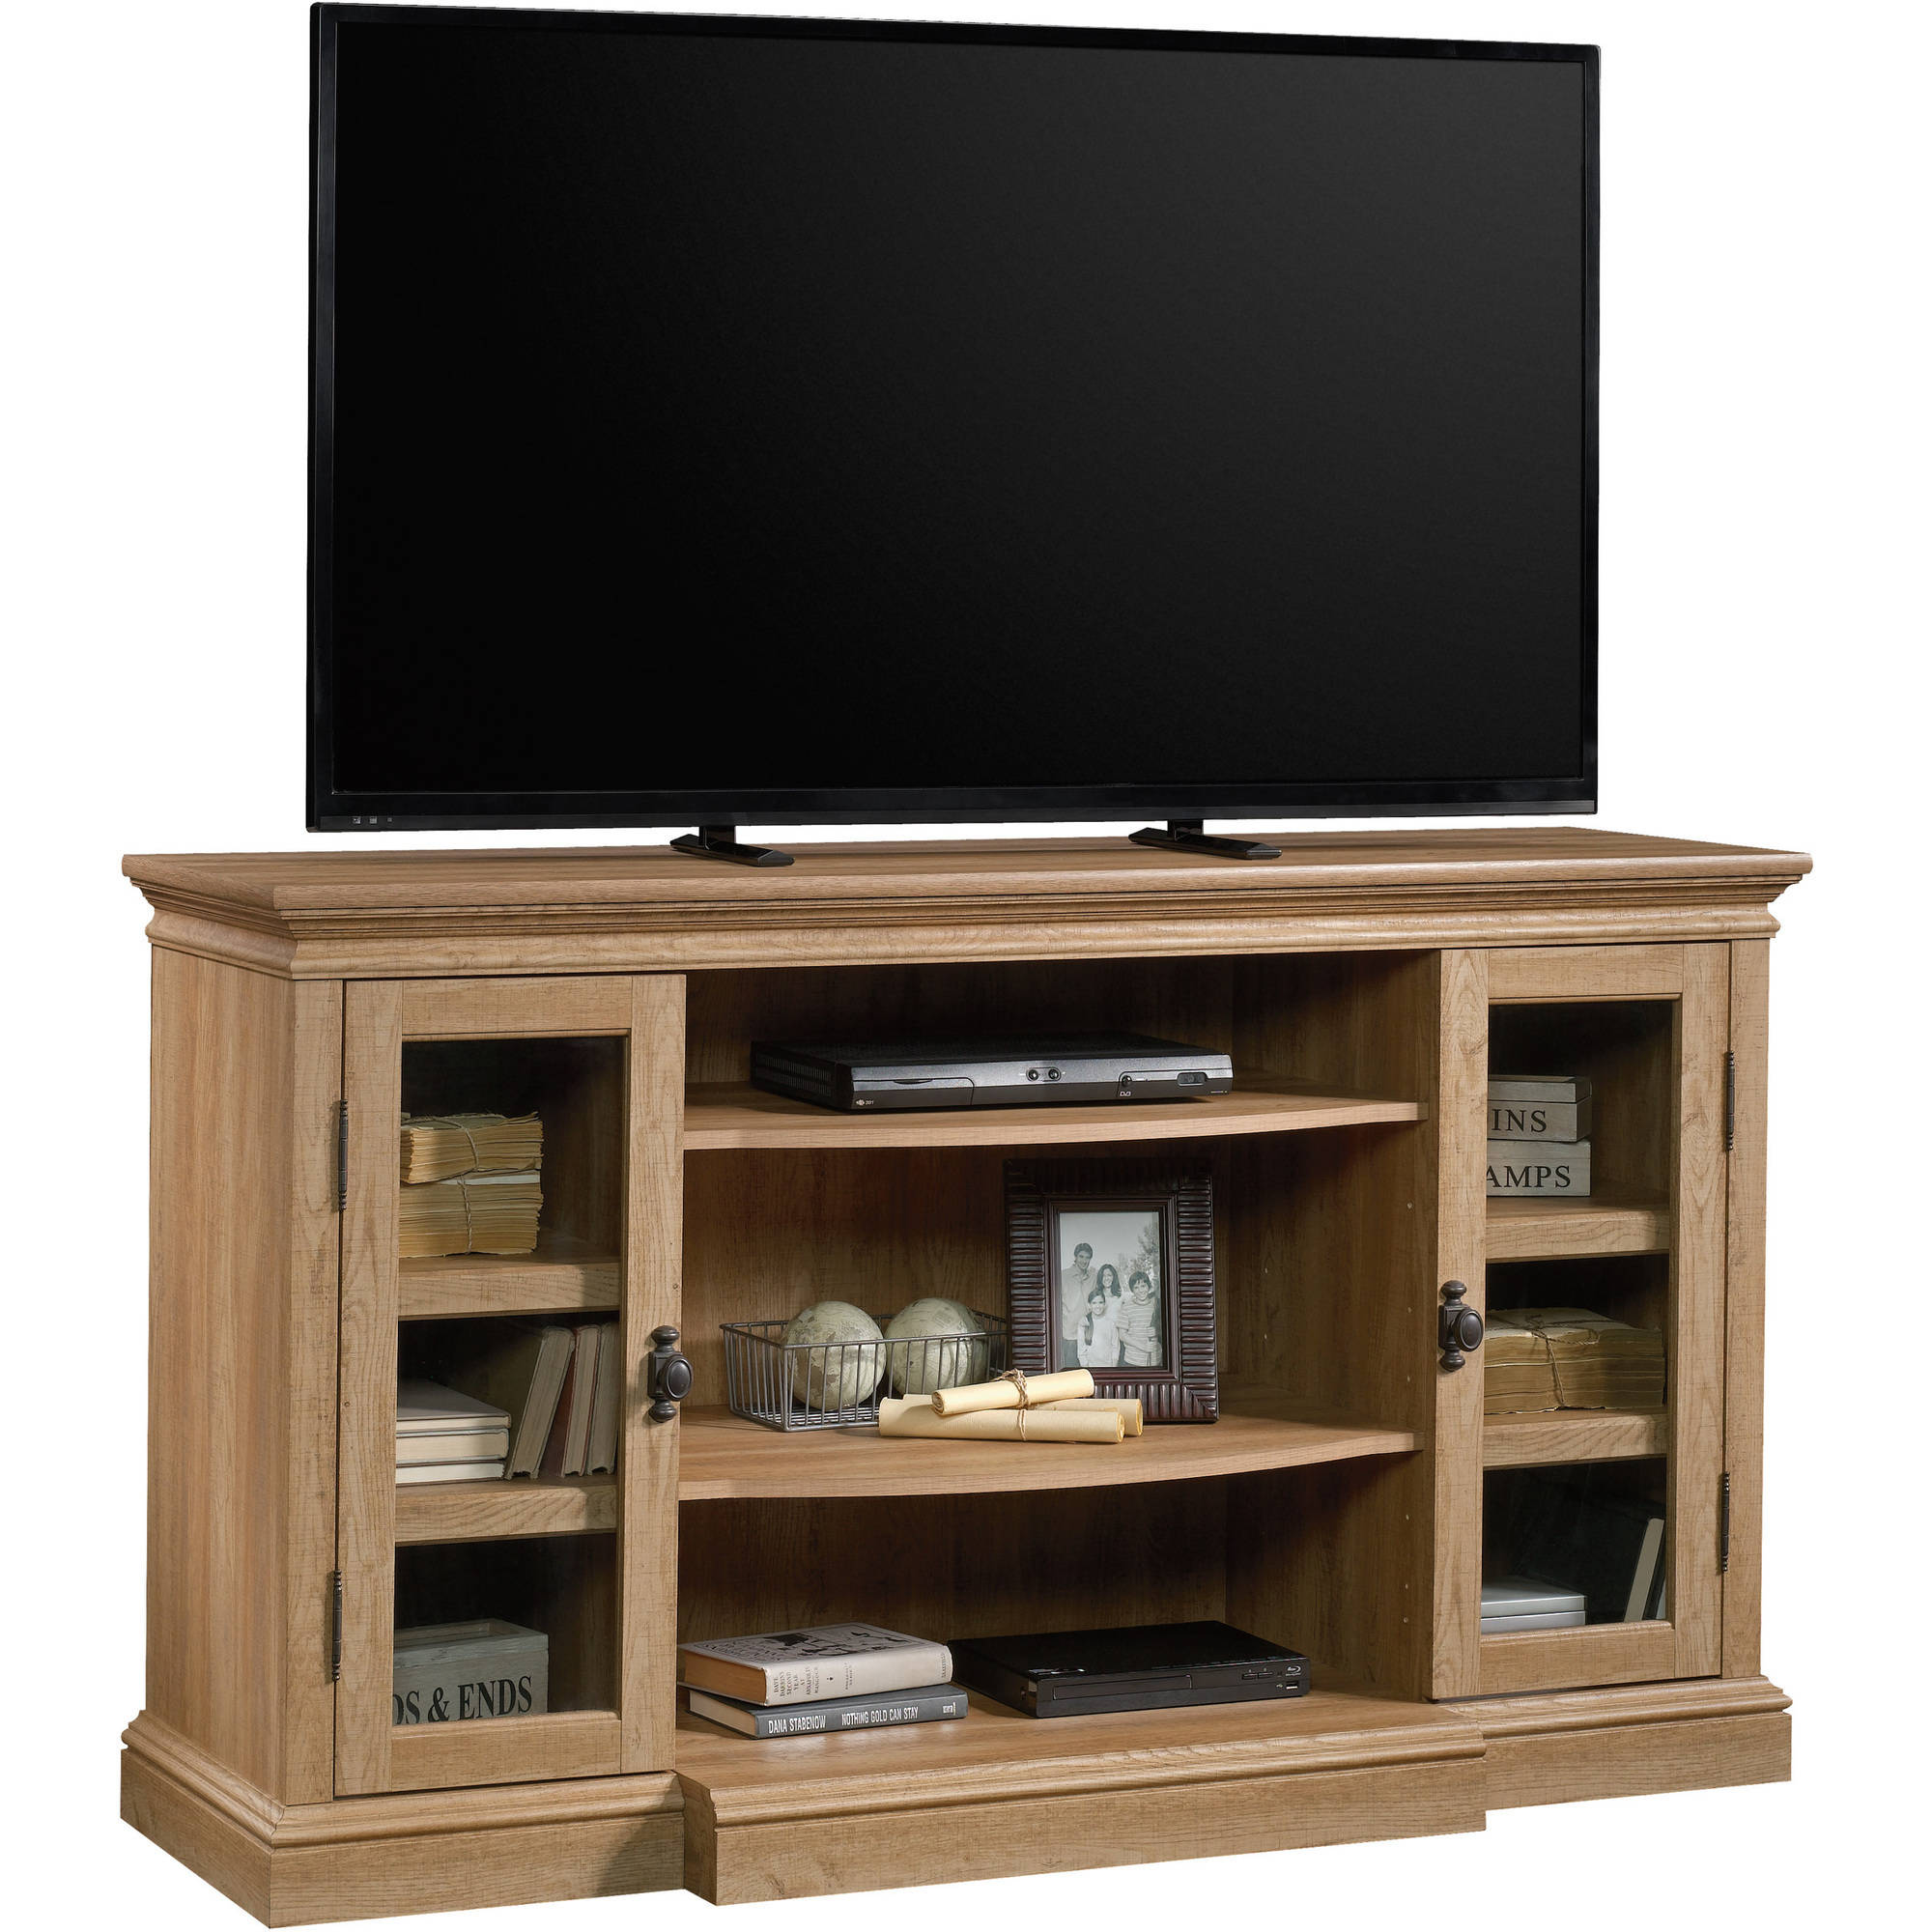 Sauder Barrister Lane Entertainment Credenza for TVs up to 60\ by Sauder Woodworking